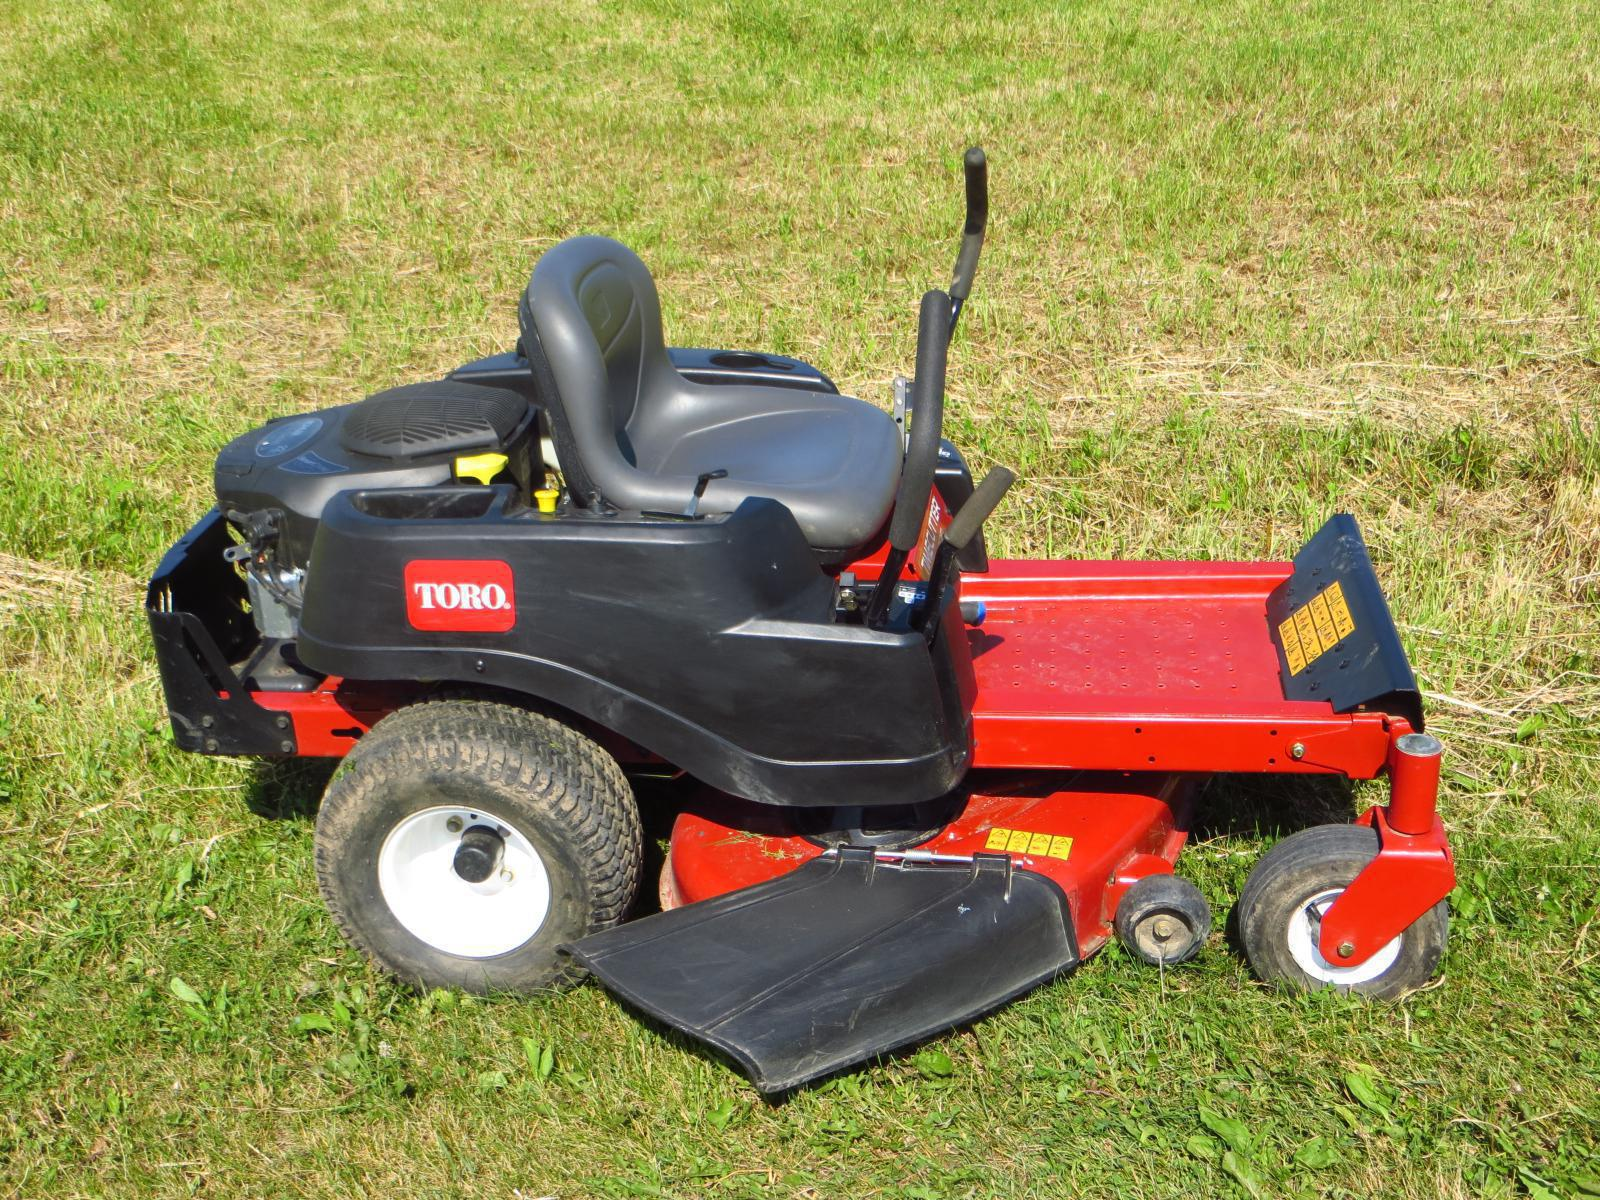 Toro timecutter z and wheel horse residential duty riding mowers are - 118_toro Timemaster Ss4225 Residential Zero Turn M